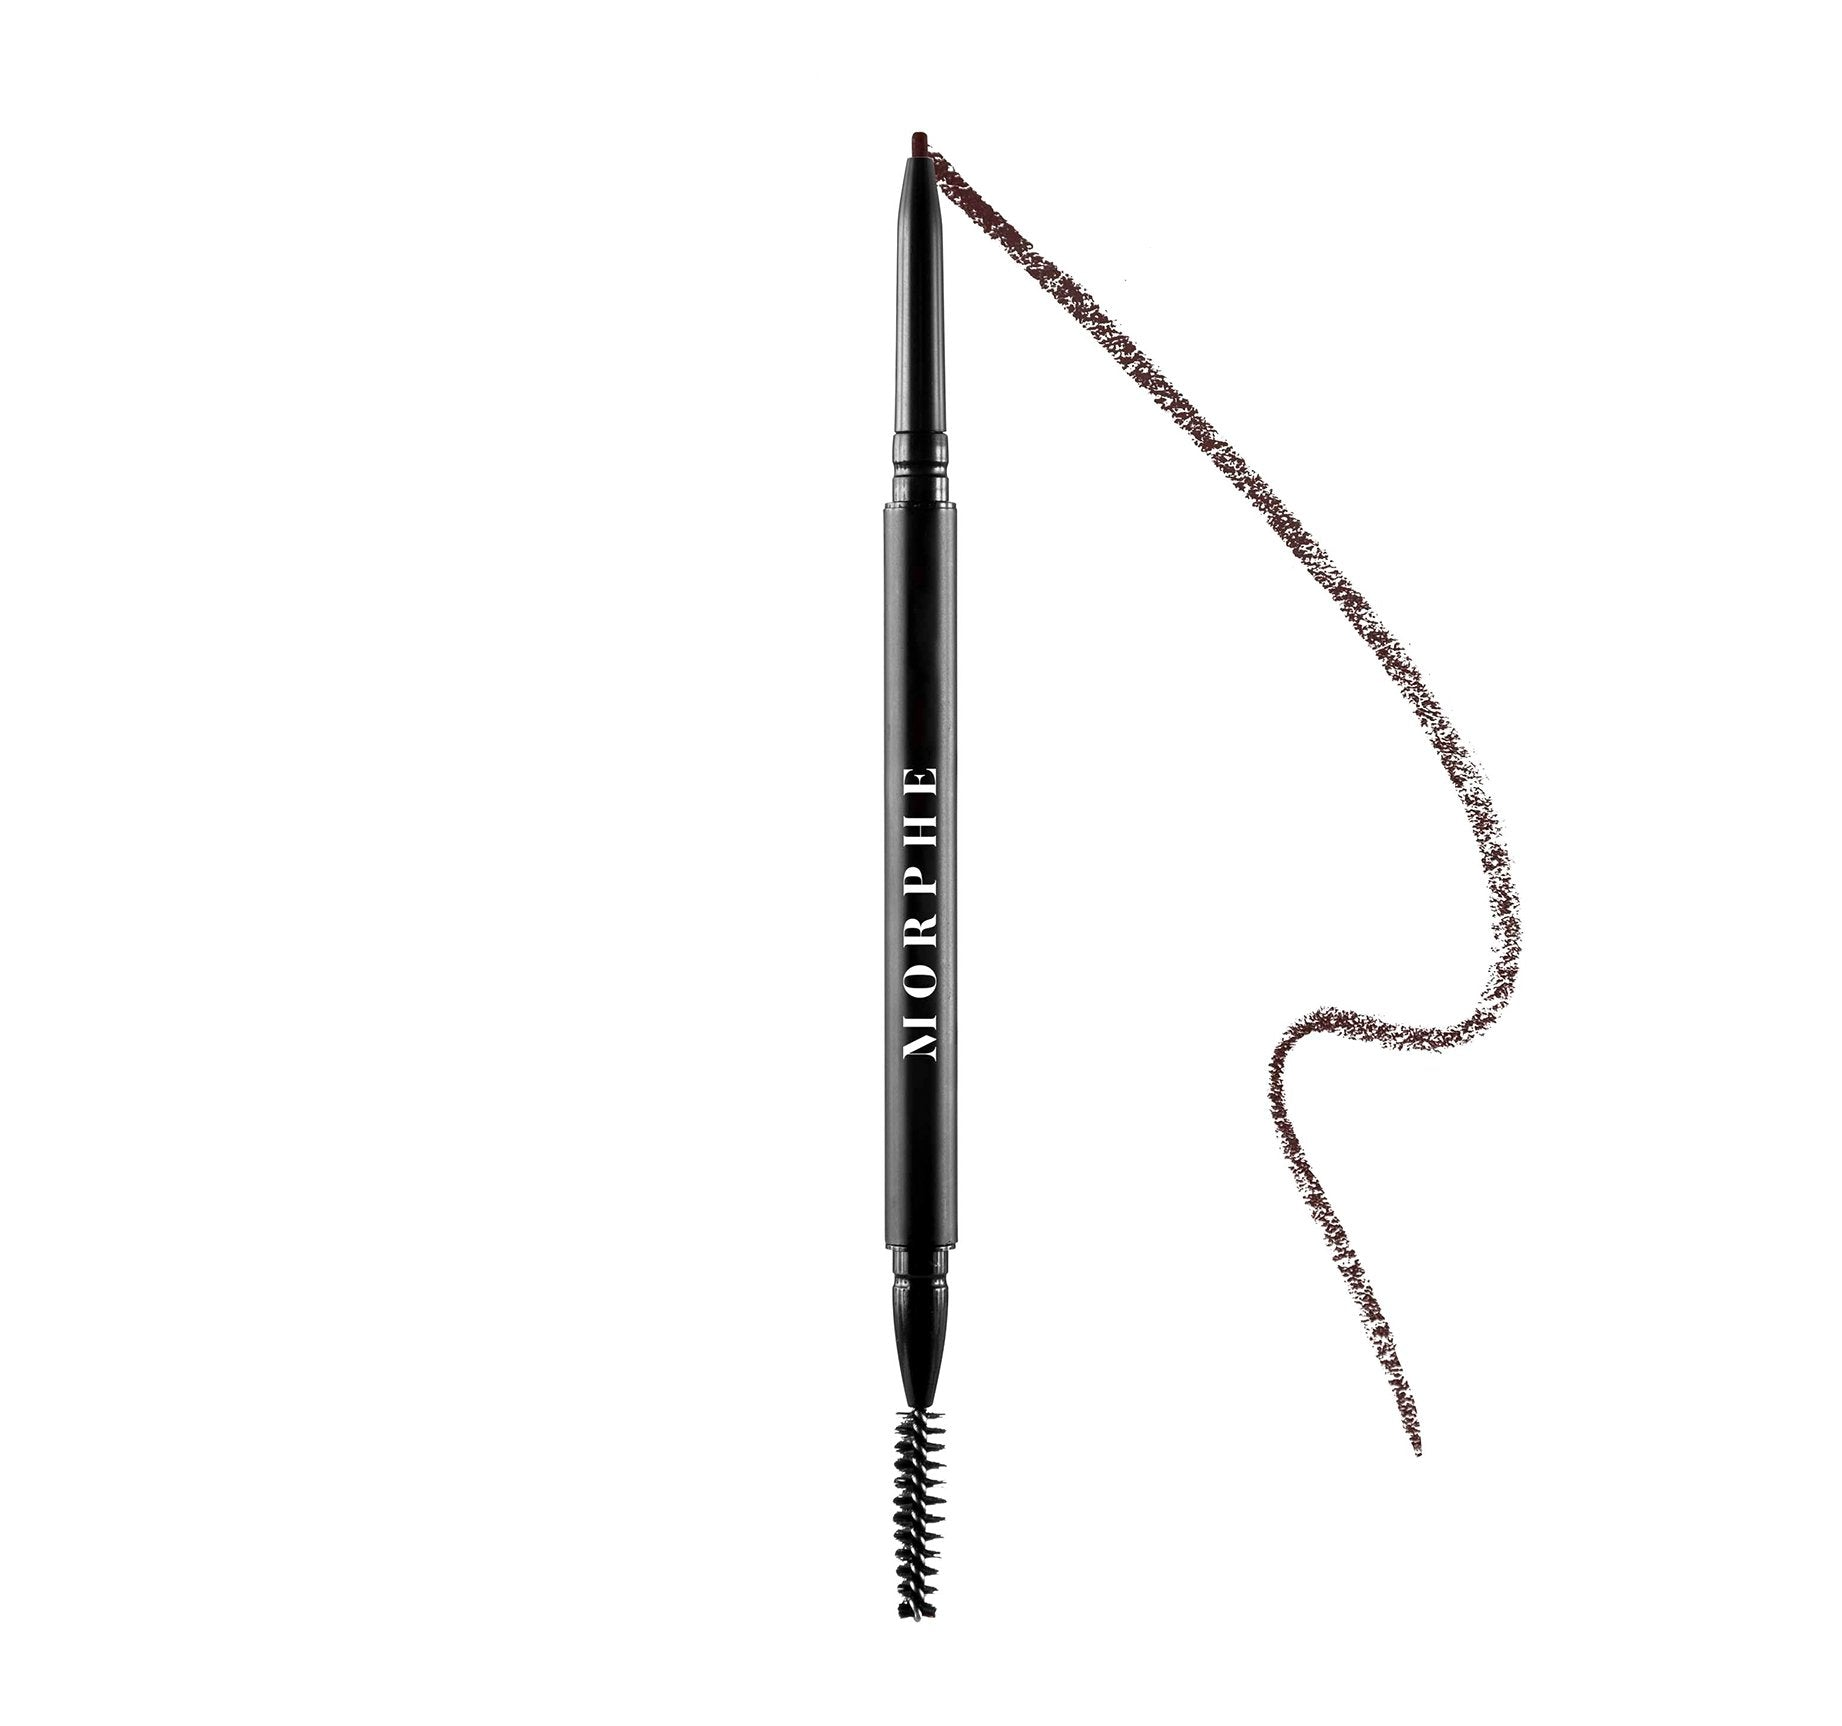 MICRO BROW PENCIL - JAVA, view larger image